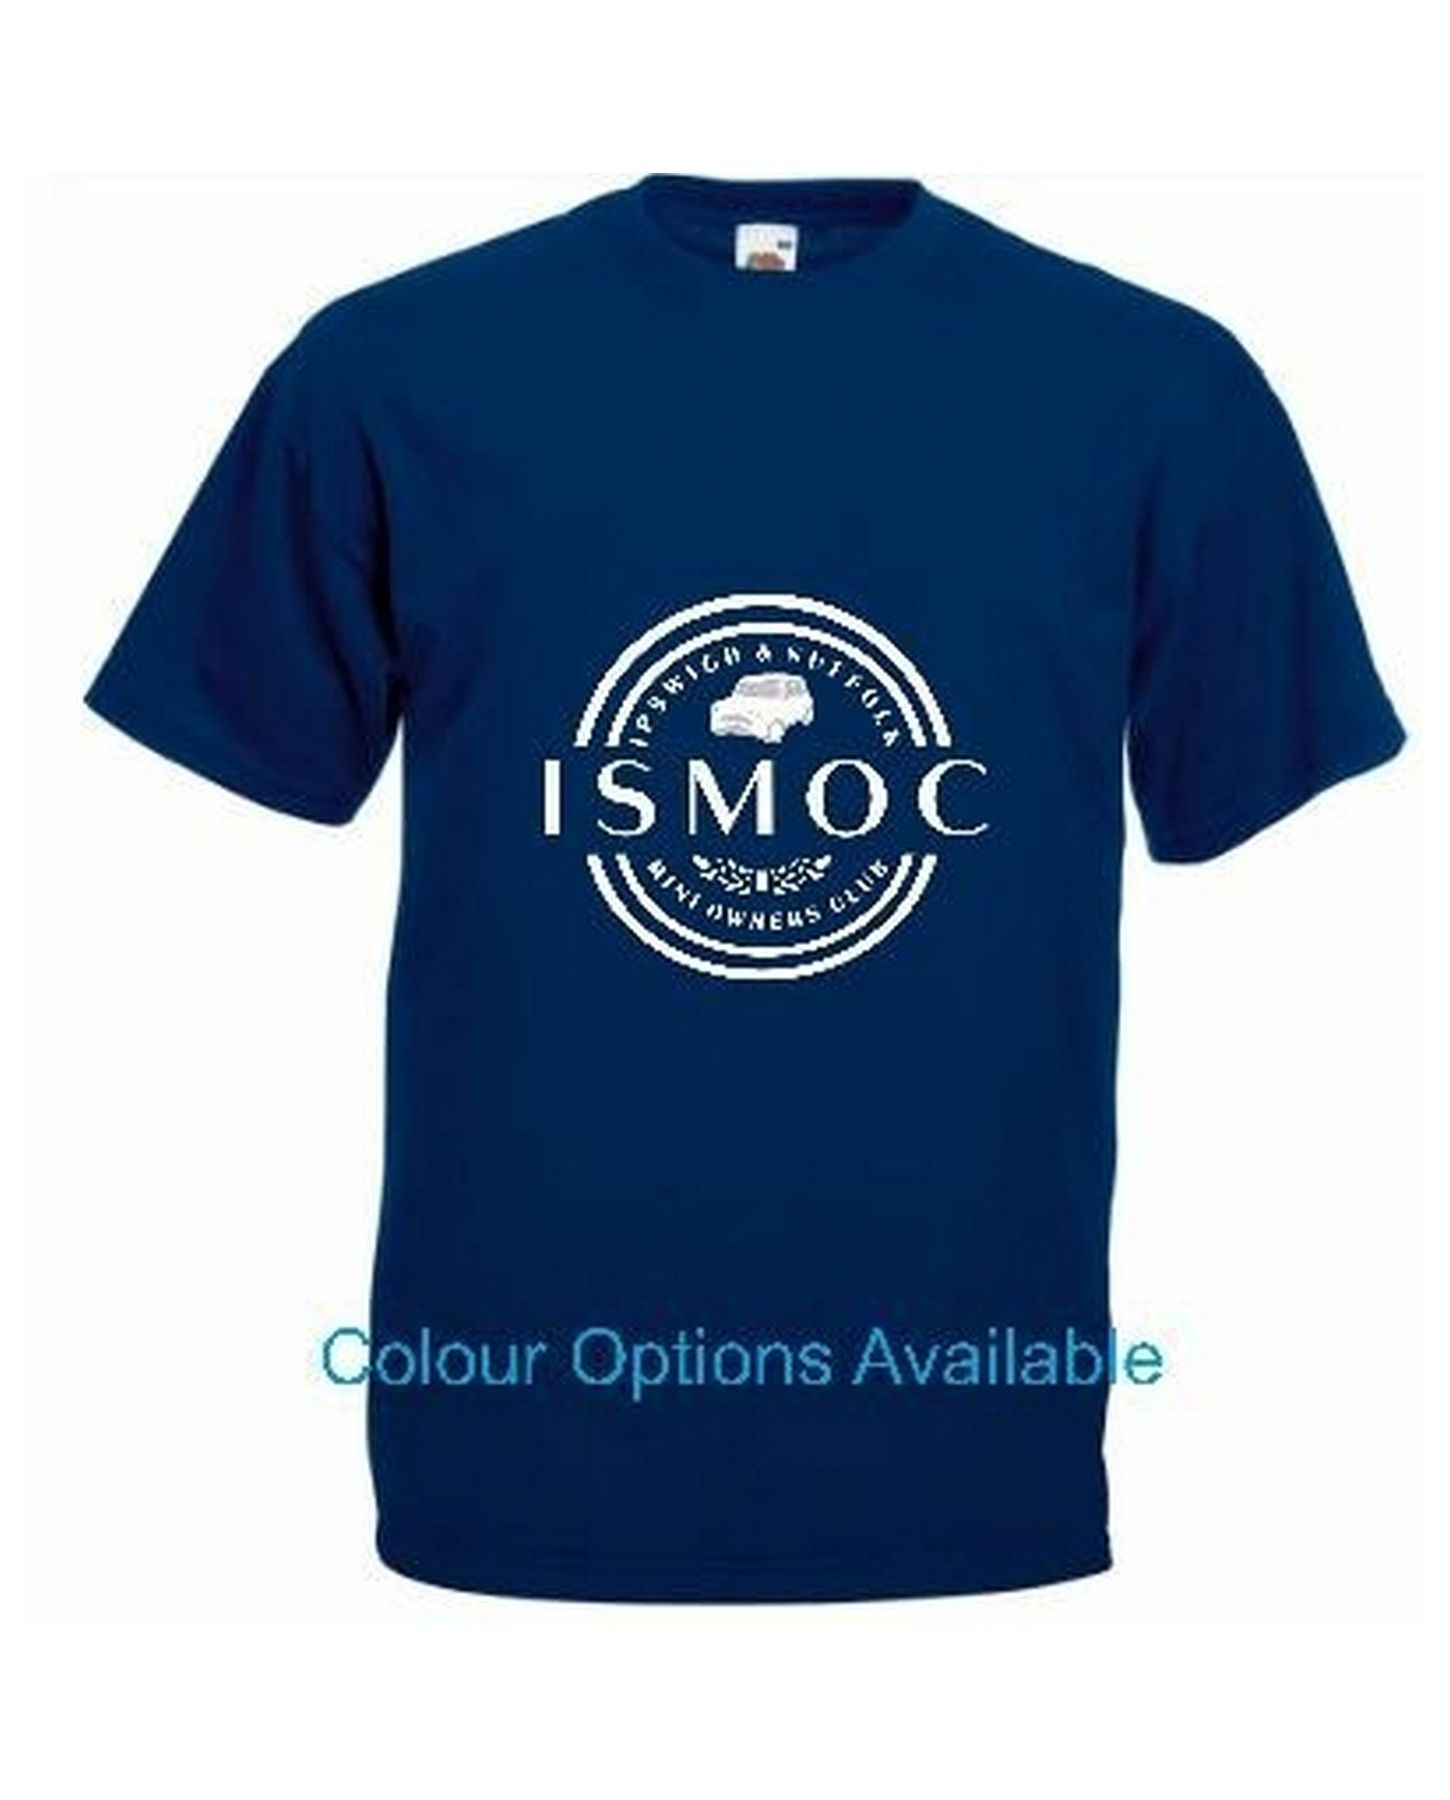 ISMOC – Fruit Of The Loom T-Shirt